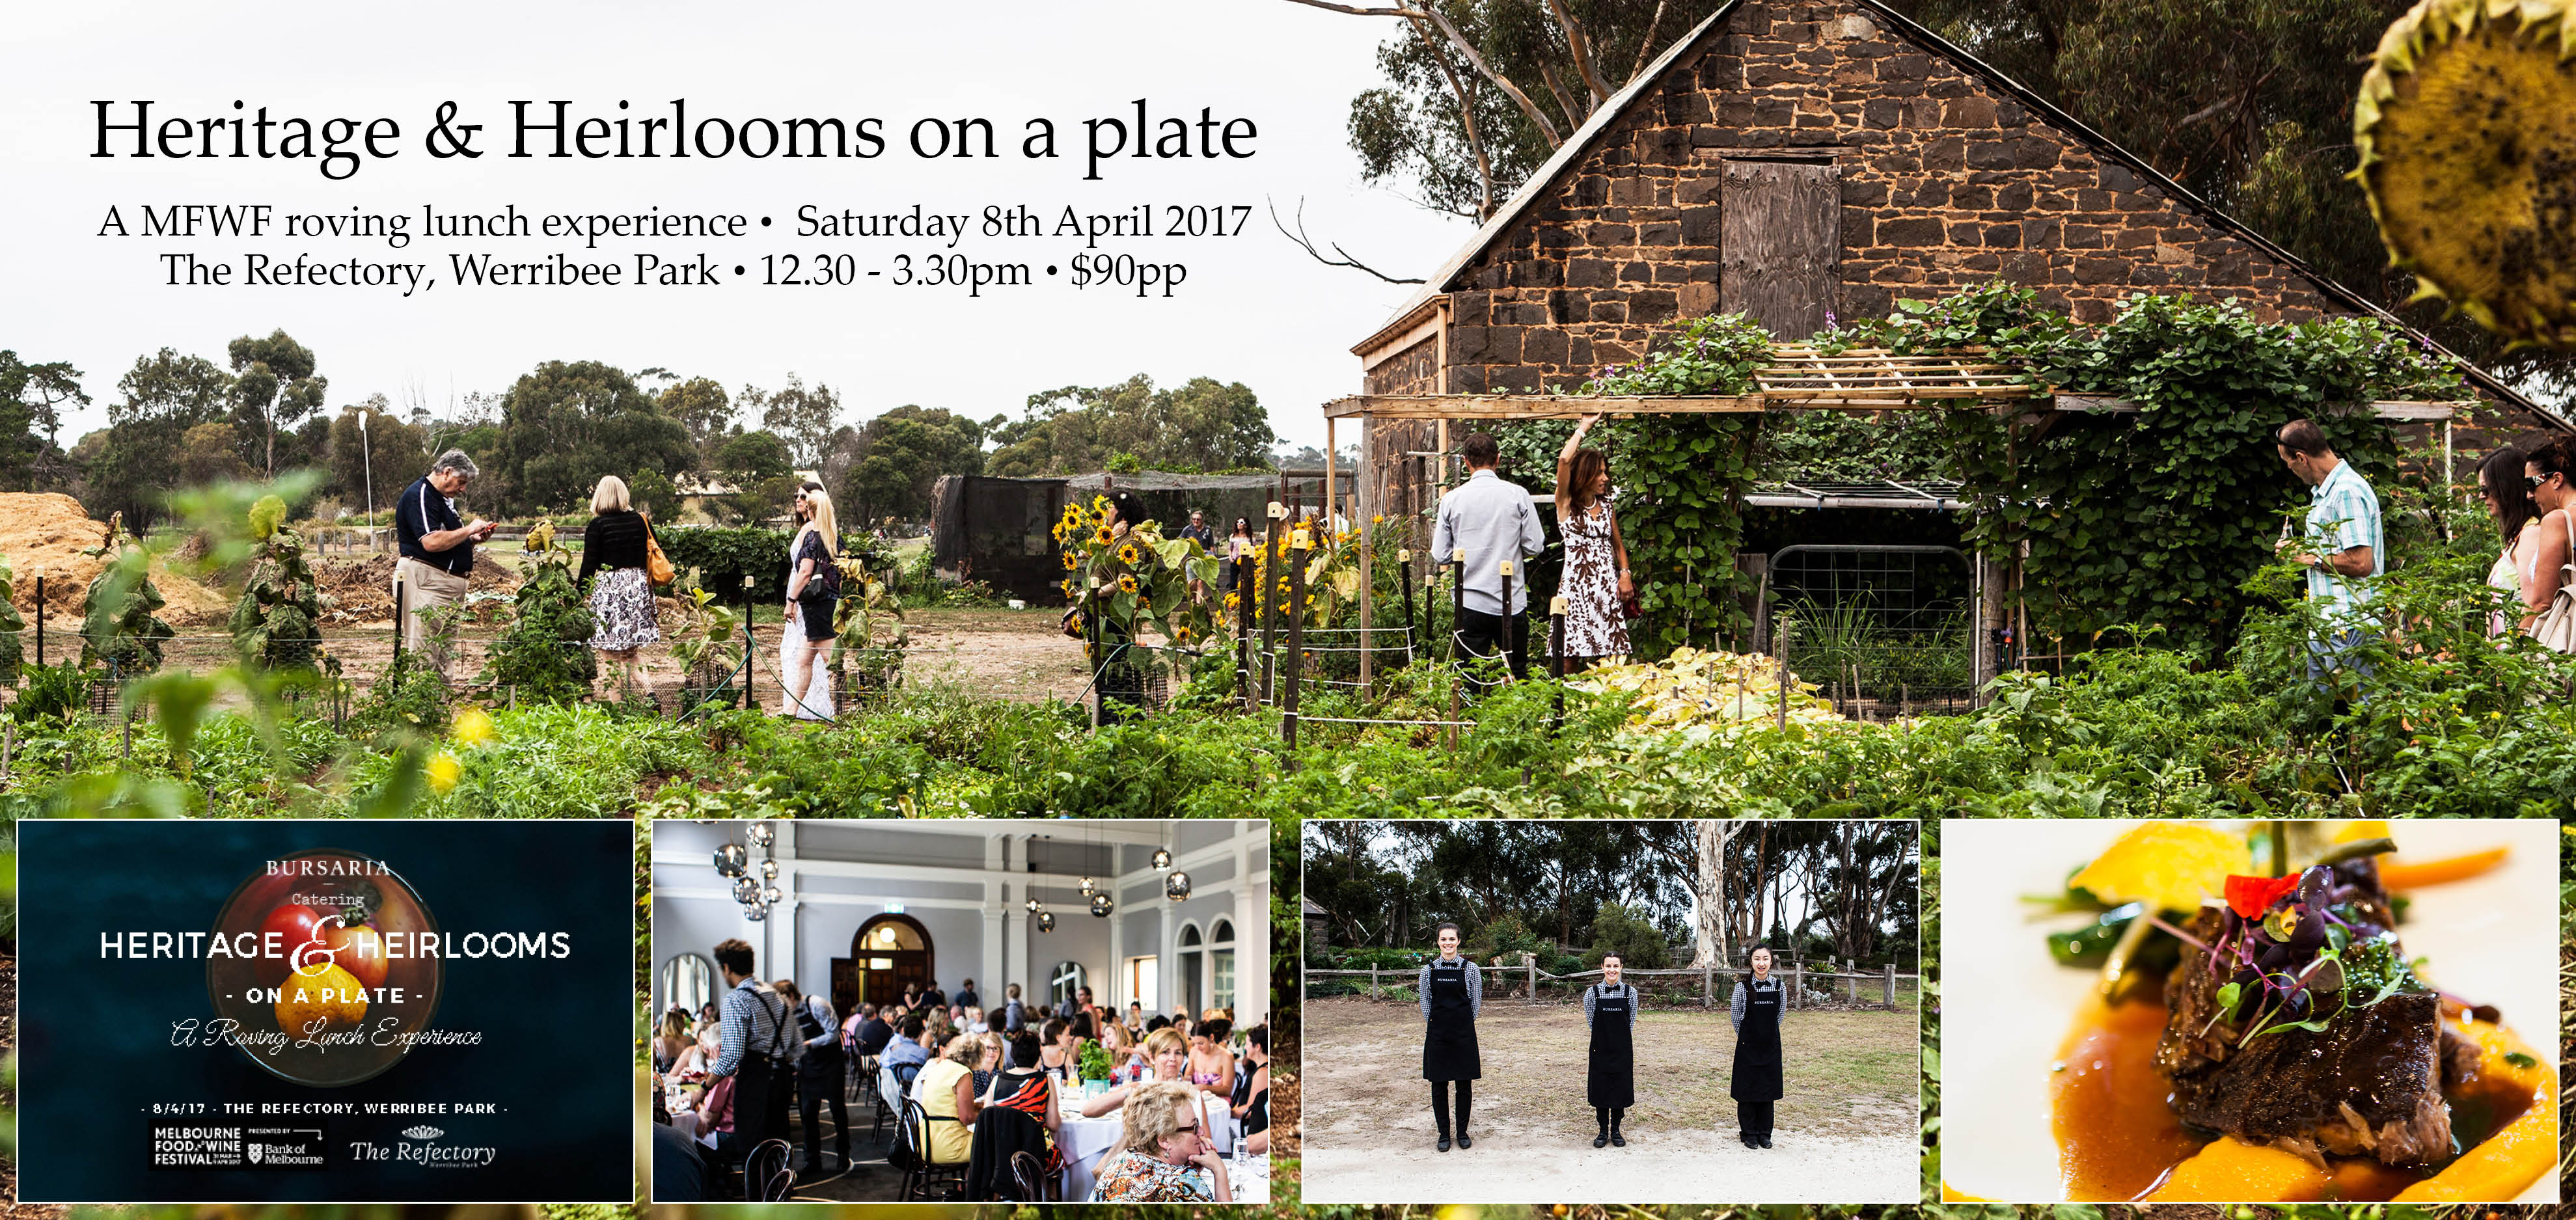 Bursaria-Fine-Foods-Heritagae-and-Heirlooms-on-a-plate-melbourne-food-wine-festival-2017-melbourne-the-refectory-werribee-park